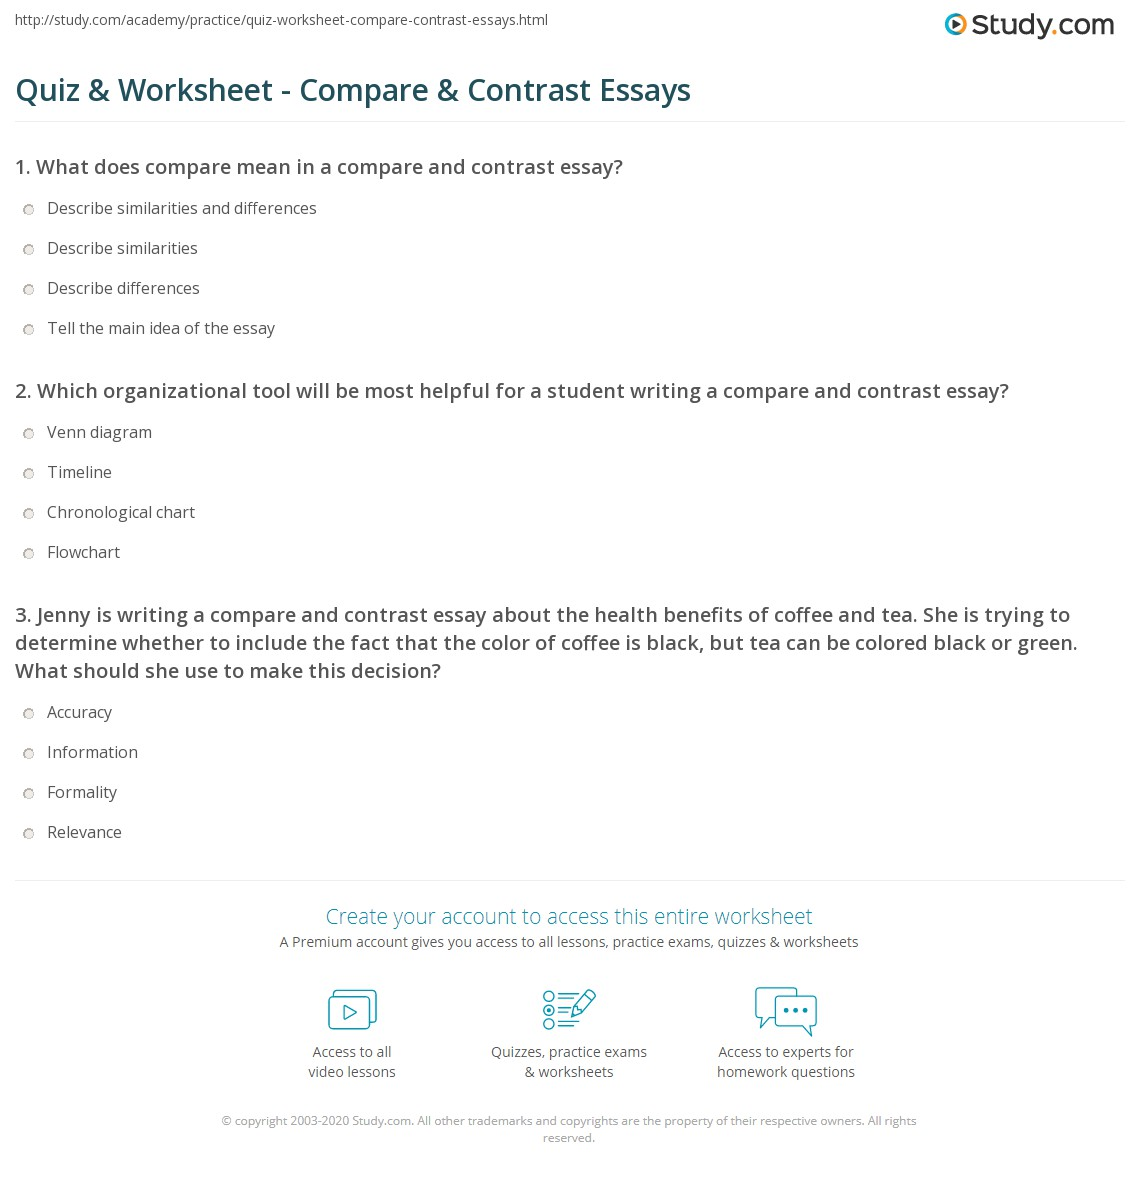 How to do a compare and contrast essay